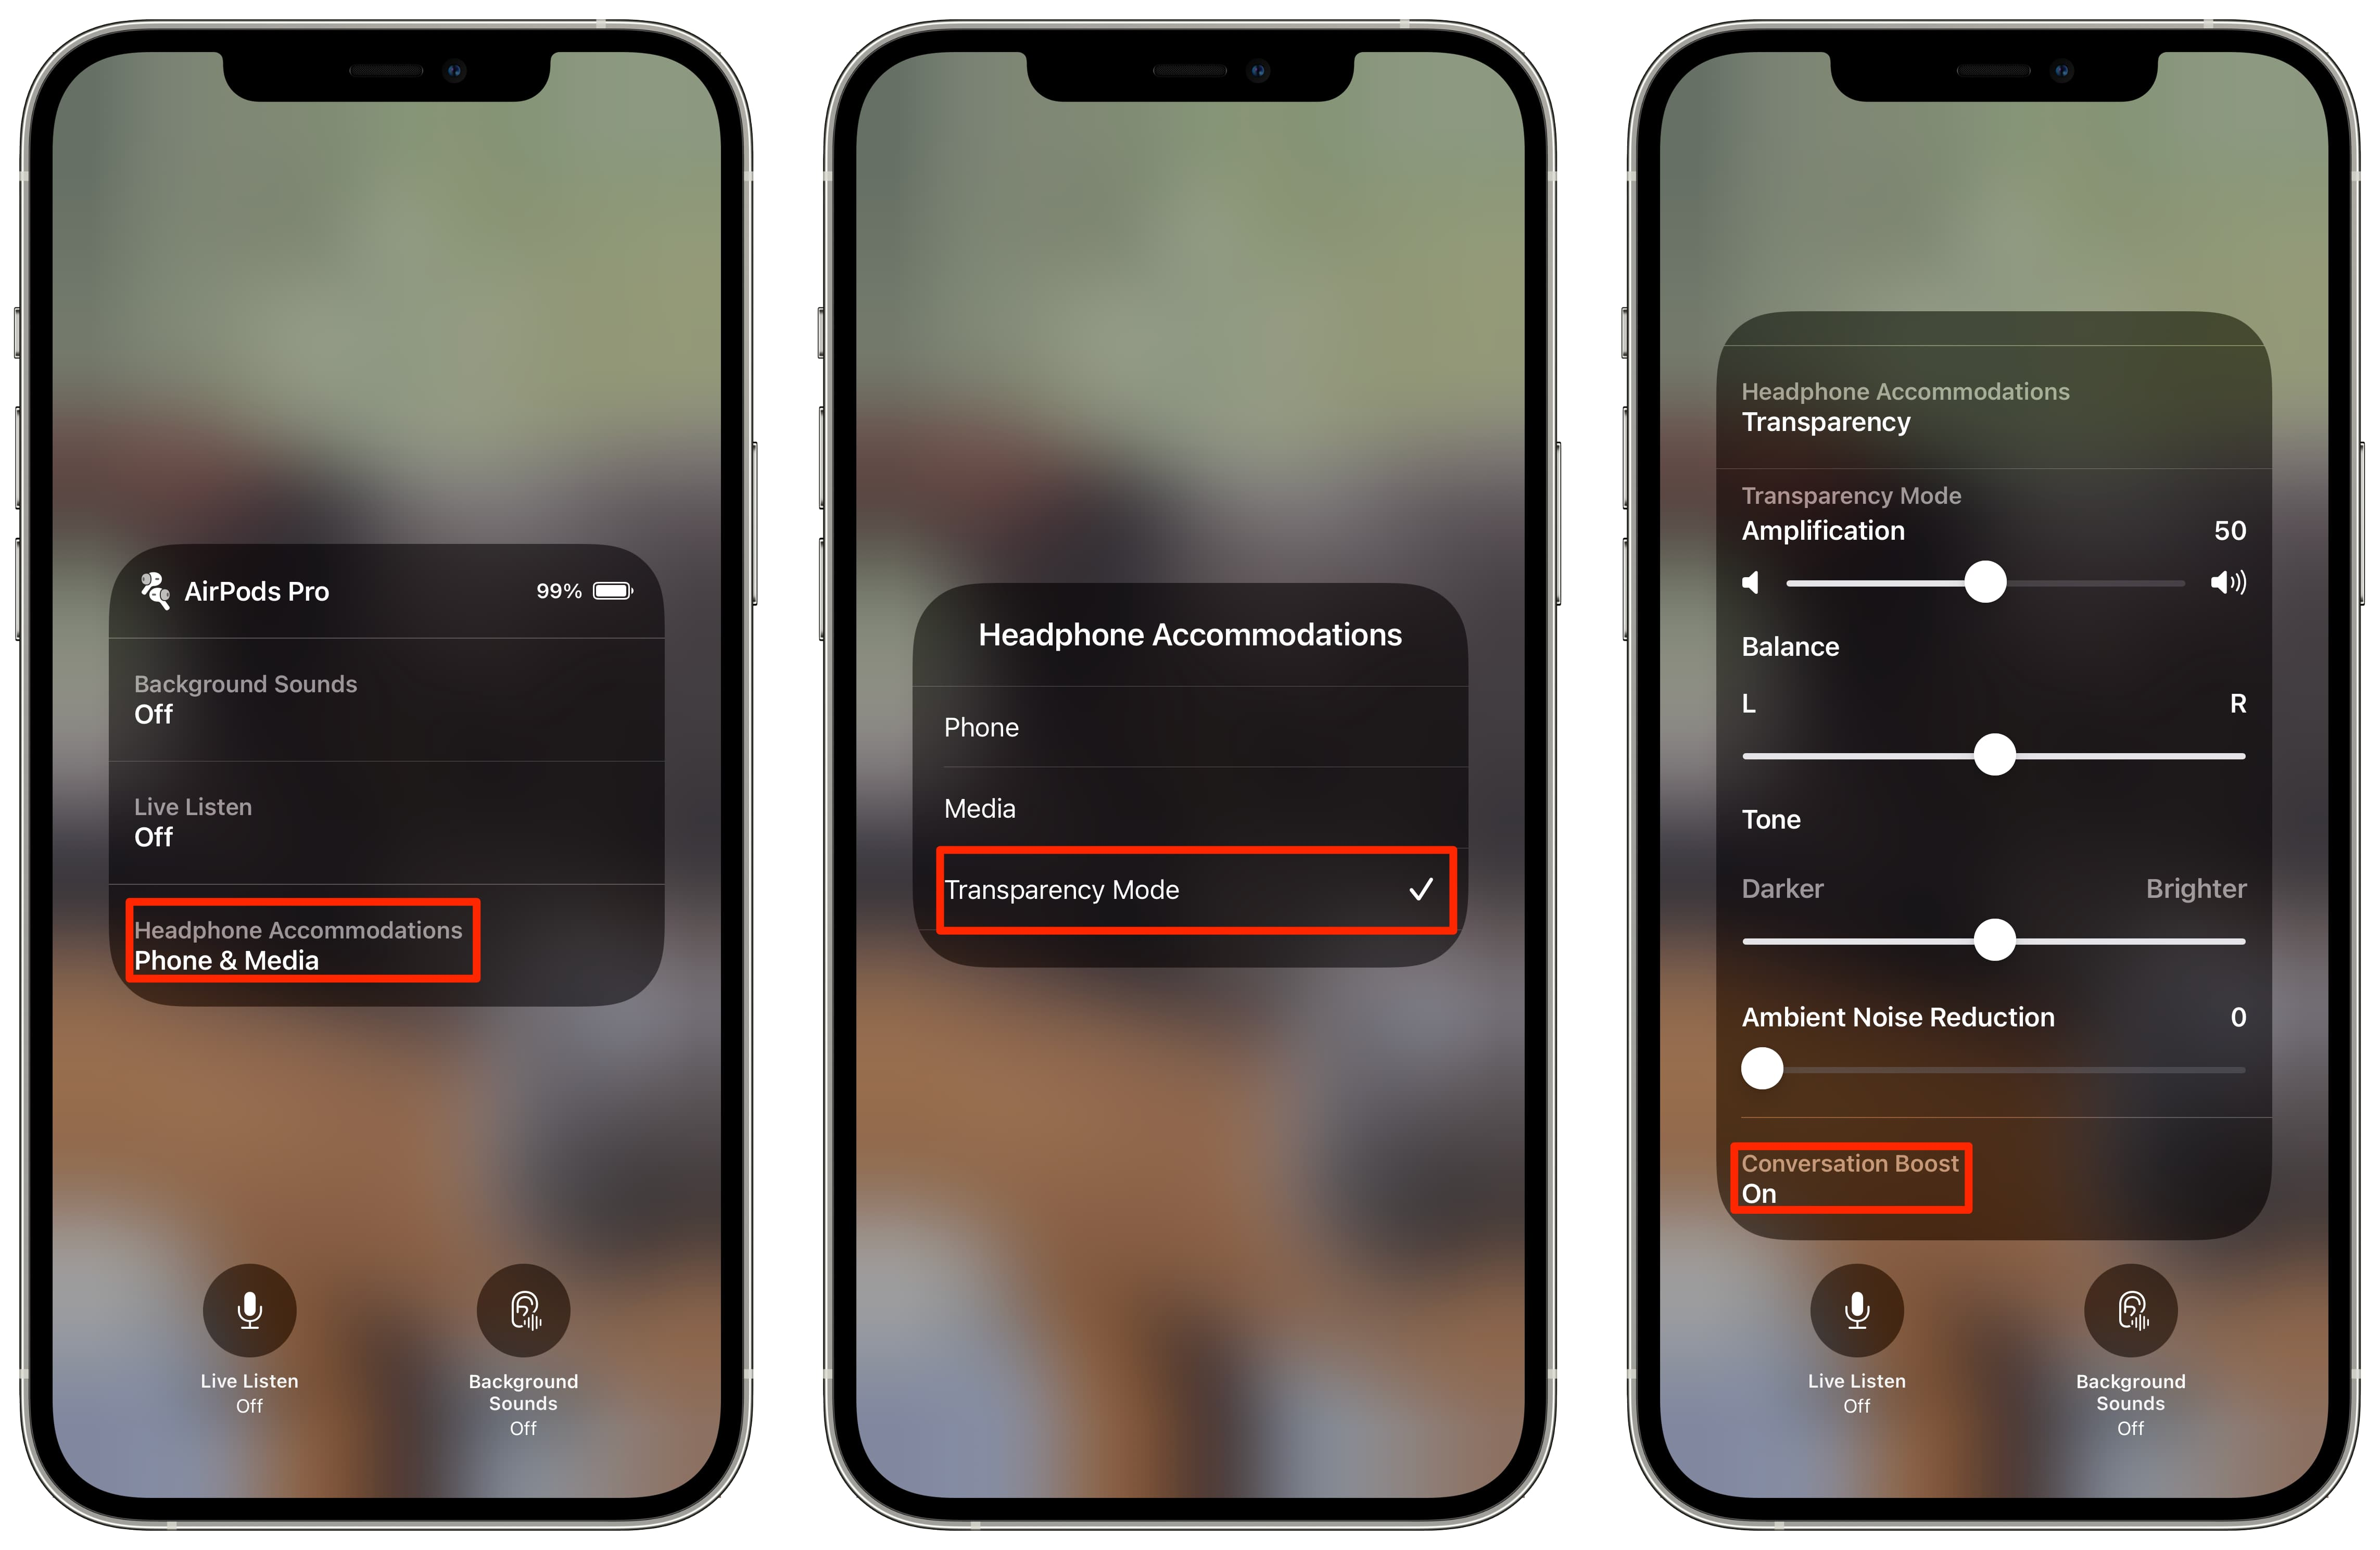 Three iPhone screenshots showing how to turn on the Conversation Boost feature from Control Center on iOS 15